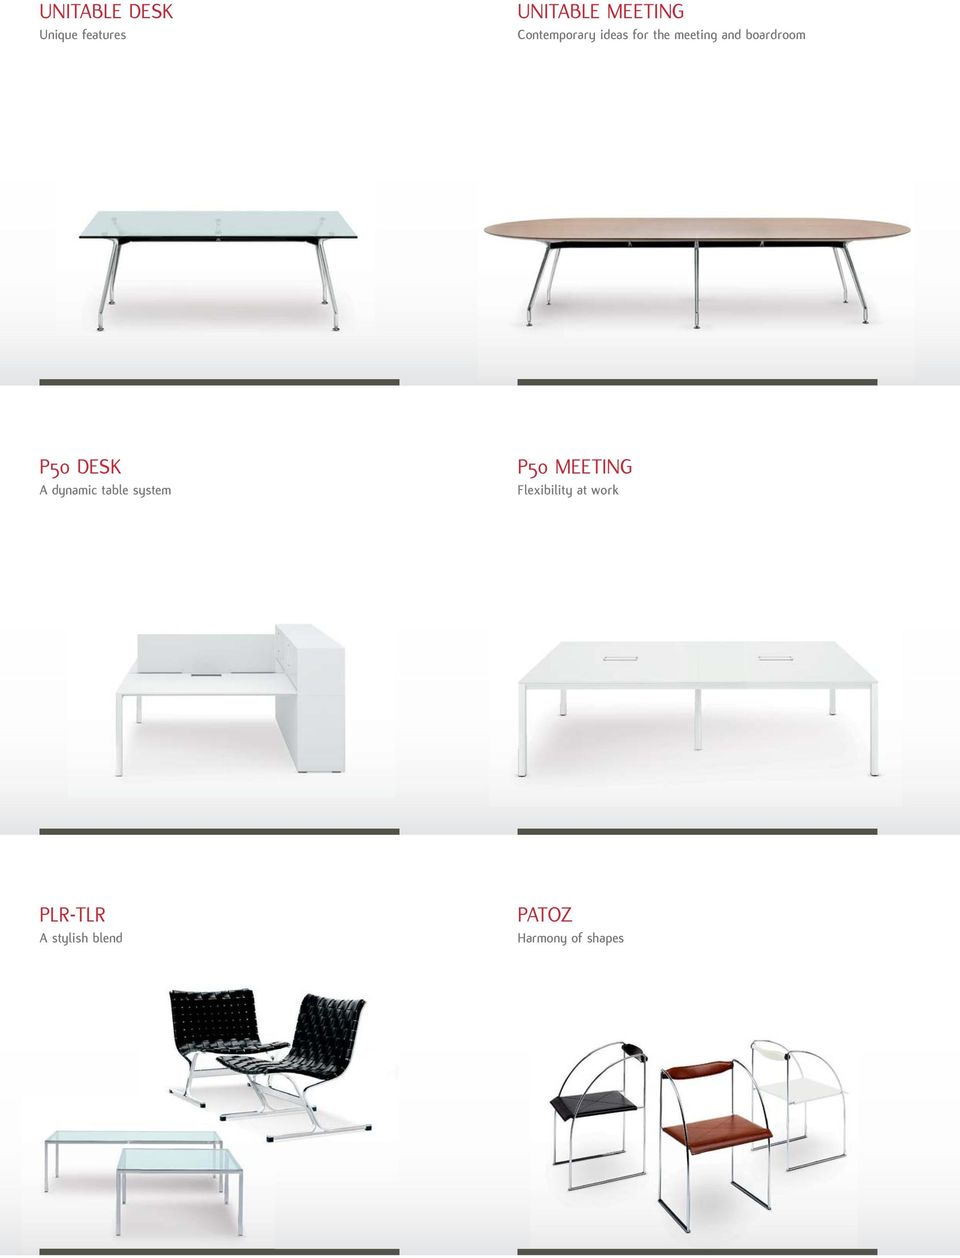 P50 DESK A dynamic table system P50 MEETING